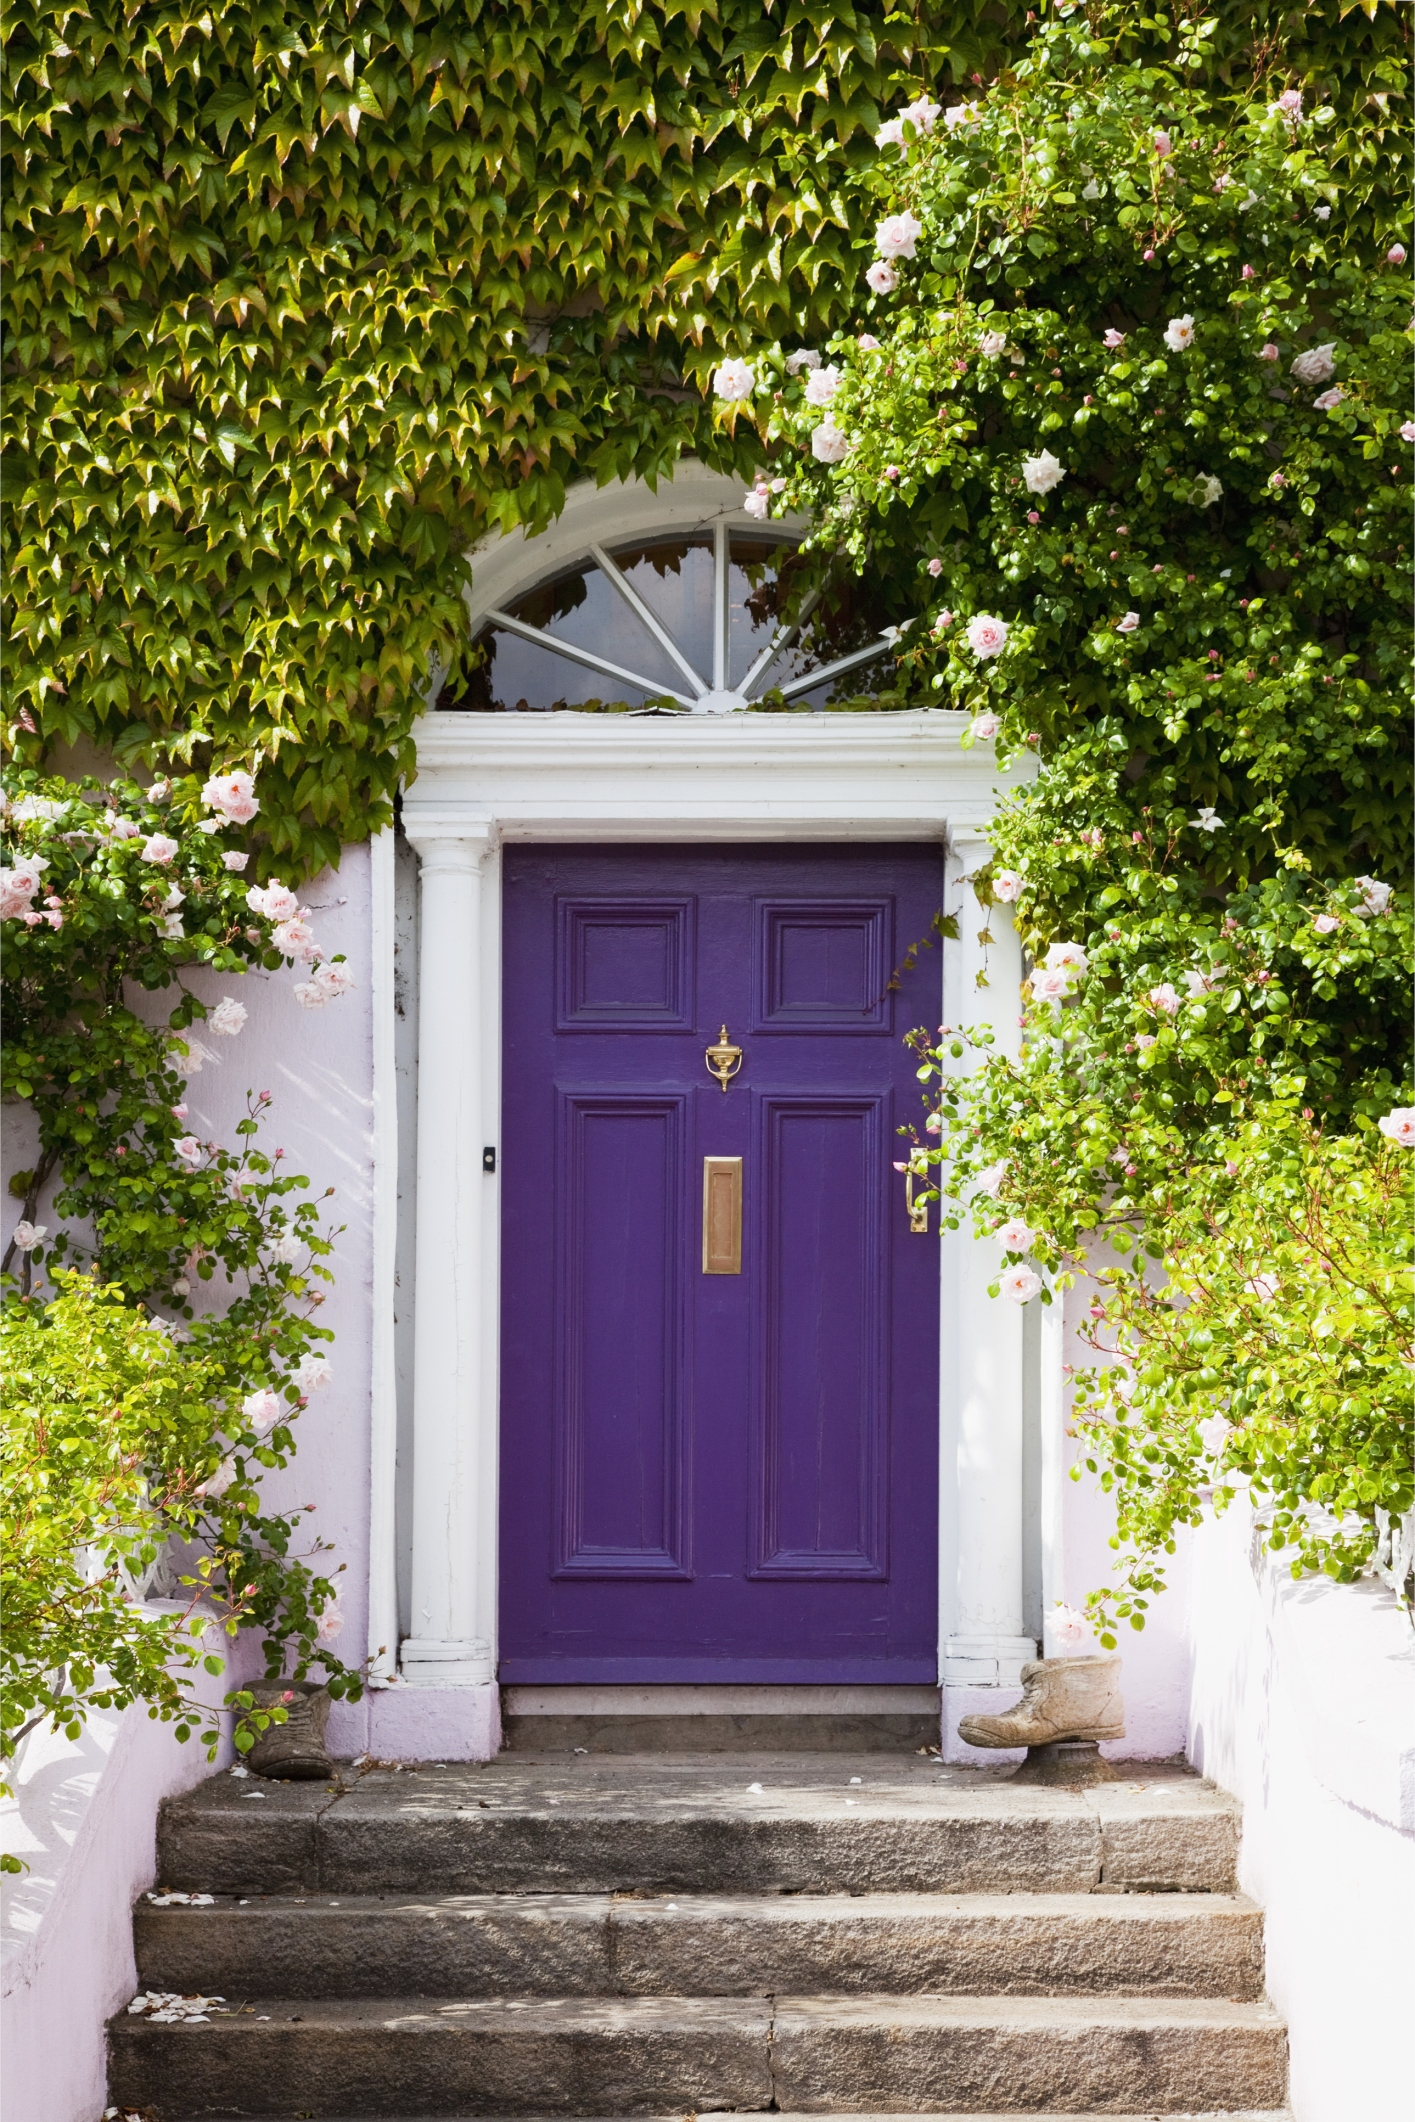 2122 #4E5D0E Colorful Front Doors Curb Appeal Ideas save image Green Front Doors 47971415